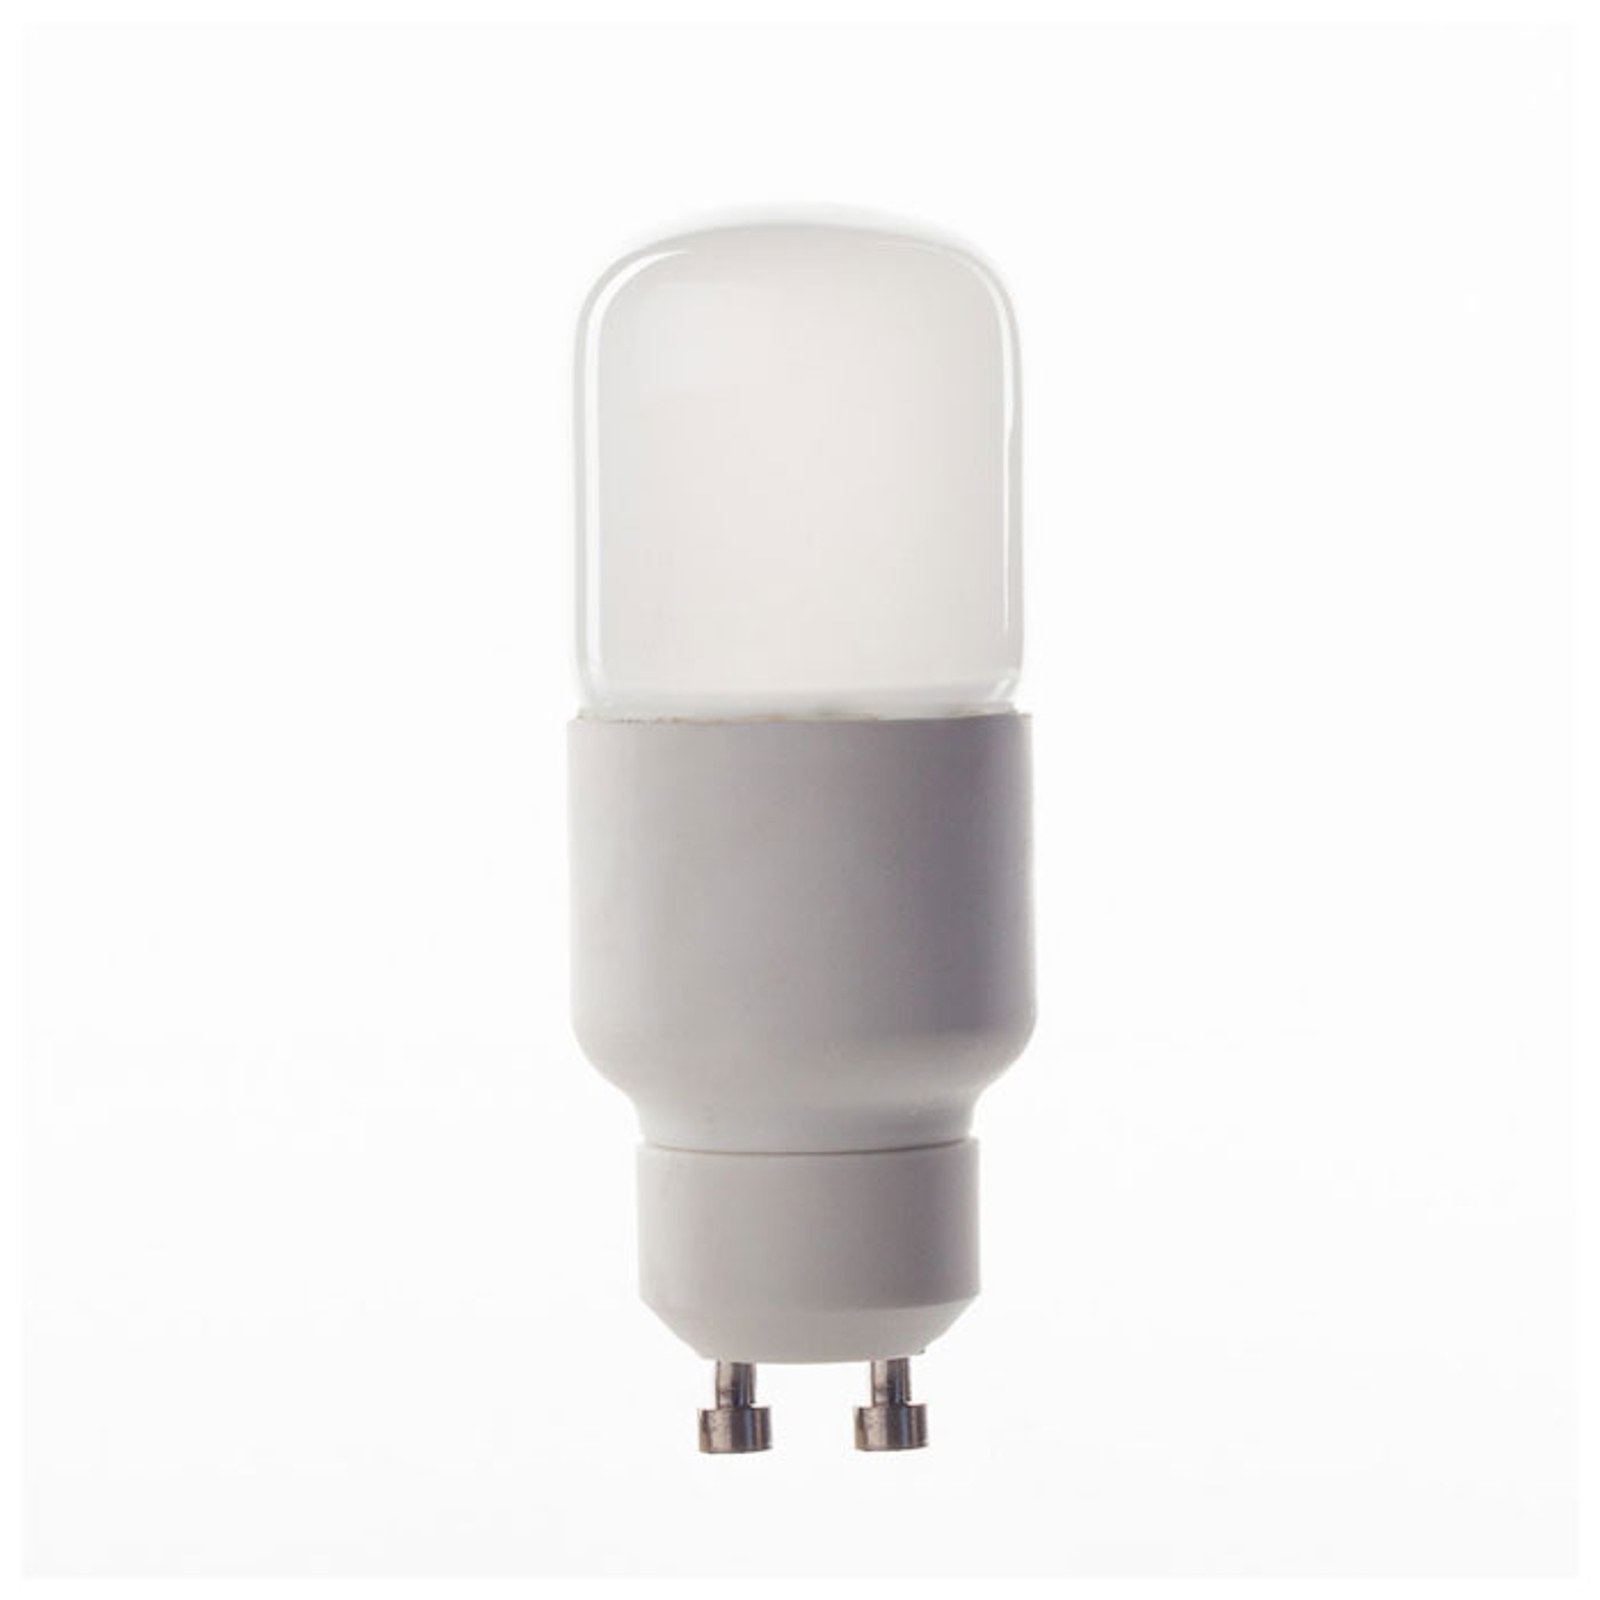 GU10 4W LED-Lampe in Röhrenform